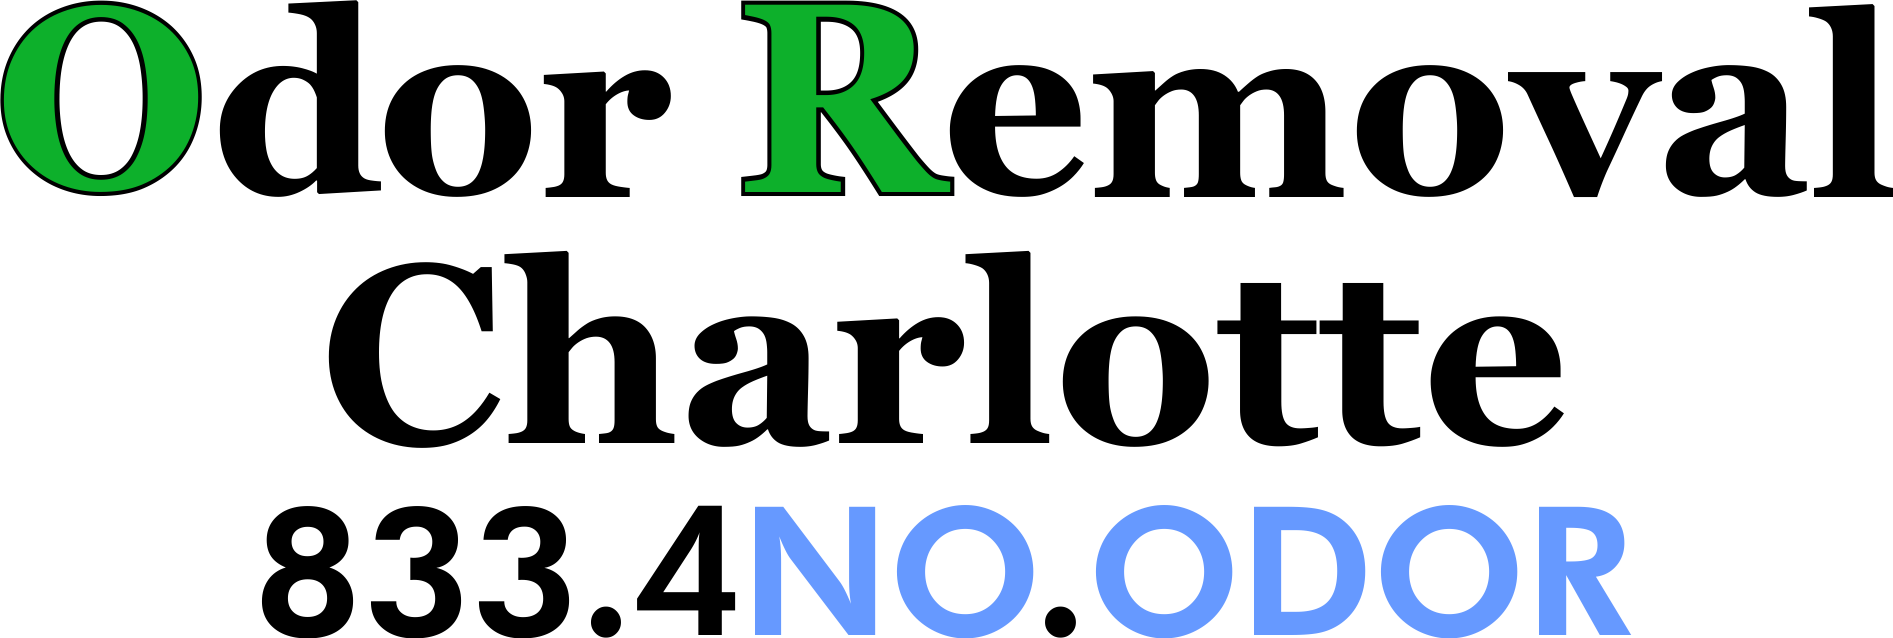 Remove Odor Charlotte, NC | 704-706-9575 | All Odors Gone